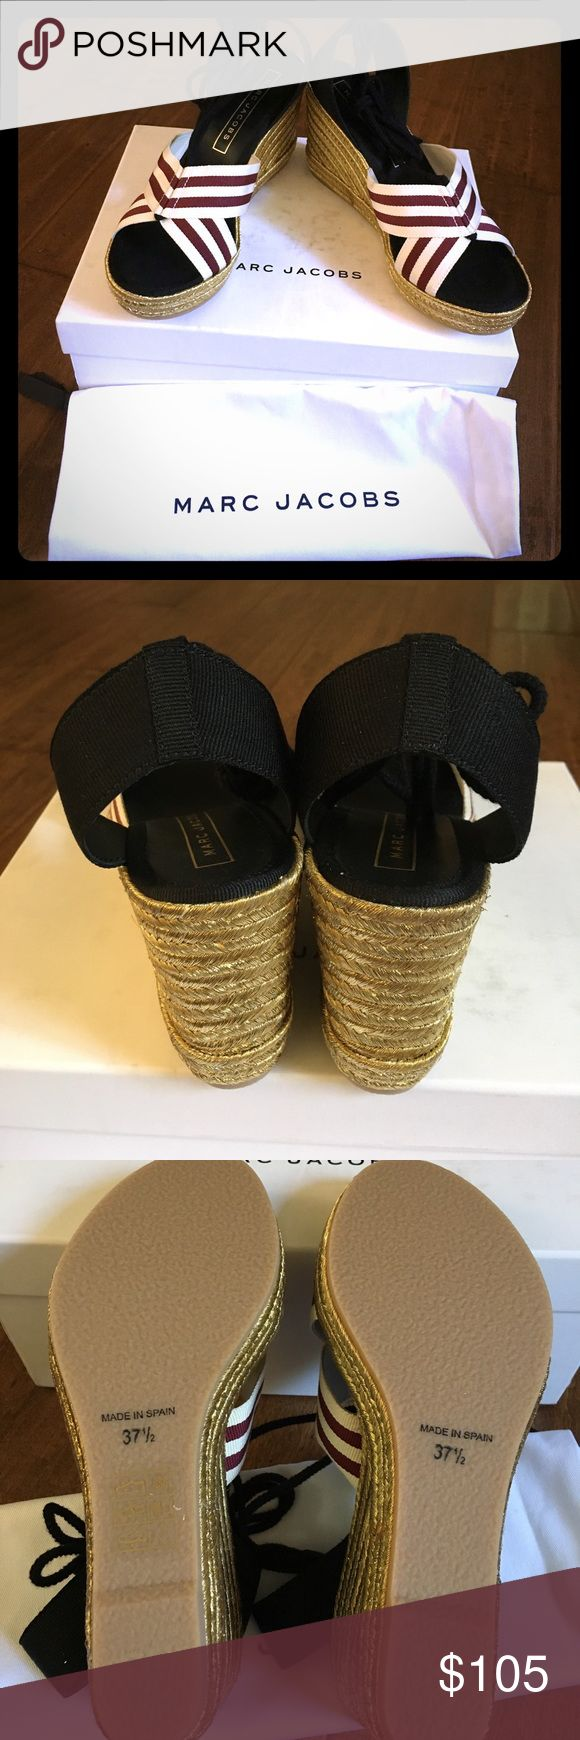 MARC JACOBS DANI GOLD ESPADRILLE WEDGE SANDALS Auth & Brand New! Great for summer. Marc Jacobs Shoes Espadrilles